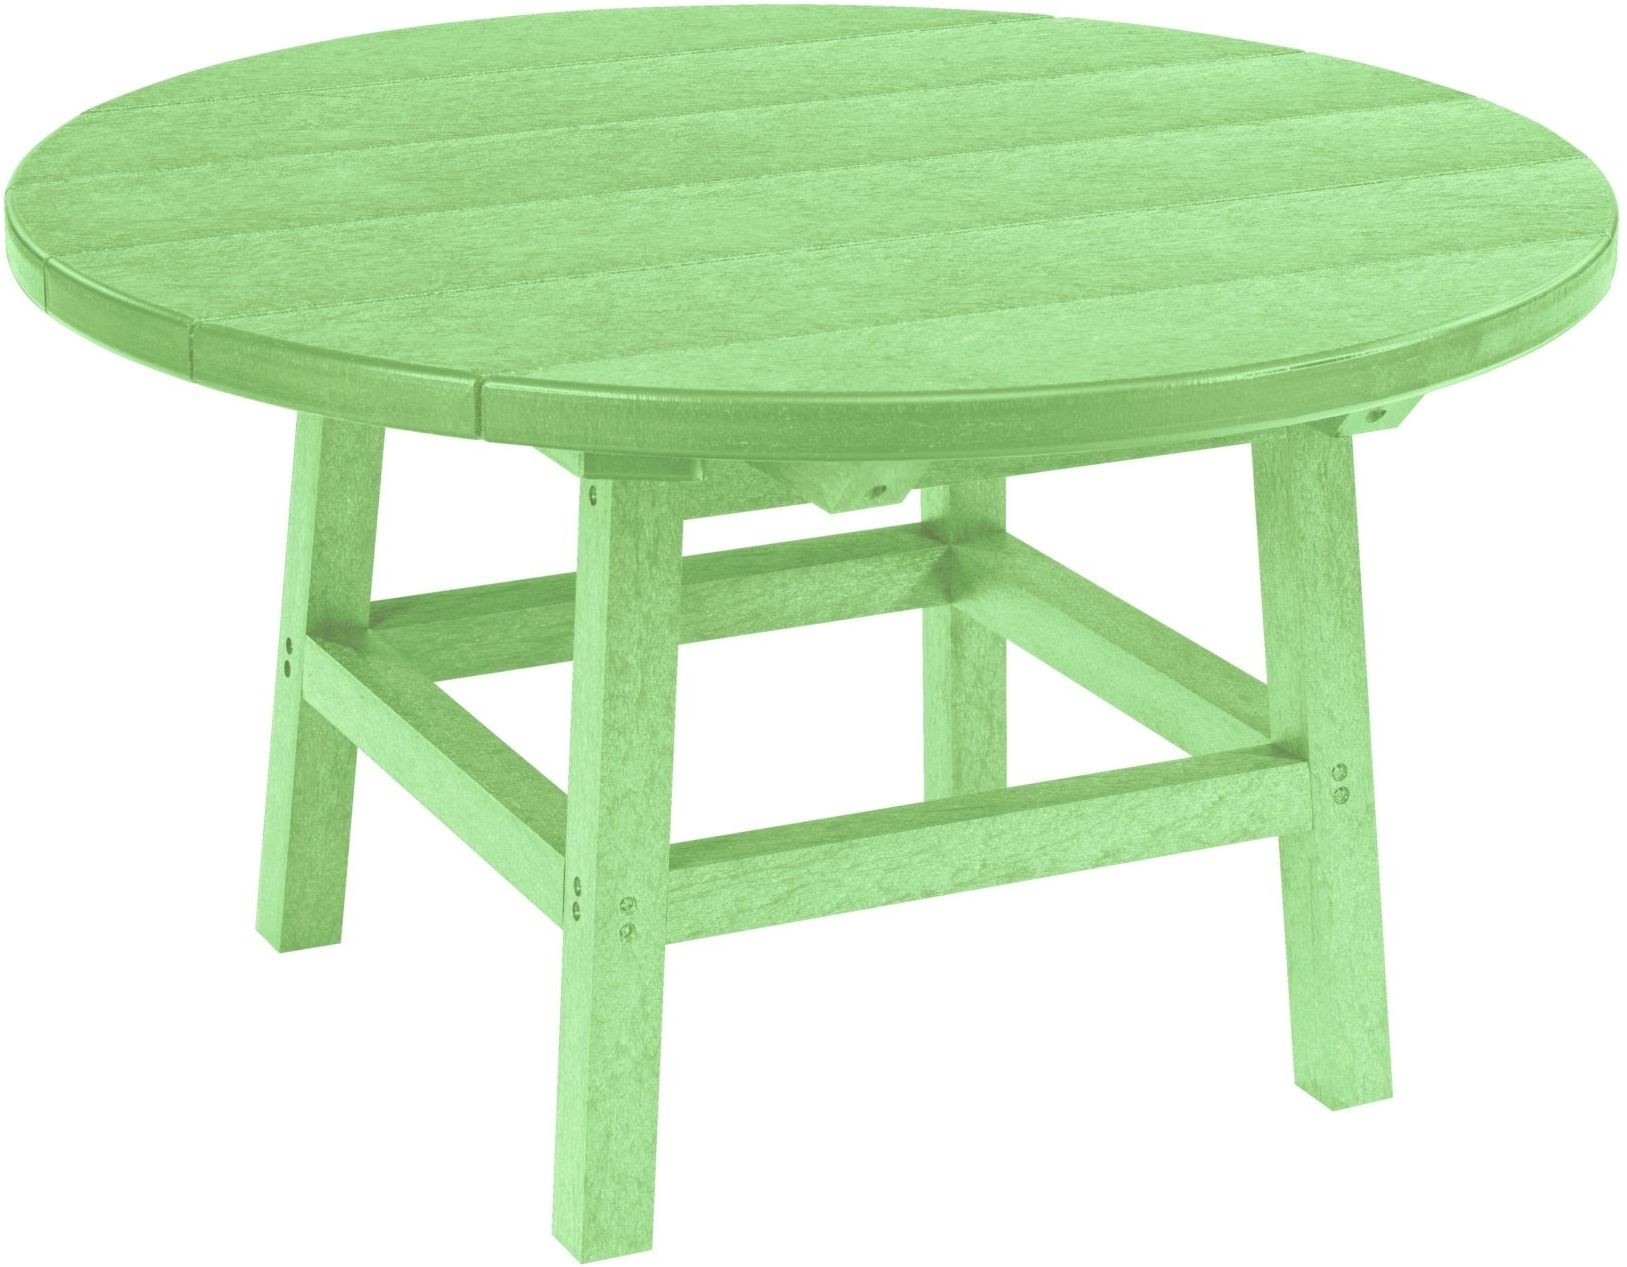 Lime Green Coffee Table Outrageous Regency Lacquered Lime Green And Gold Coffee Table At